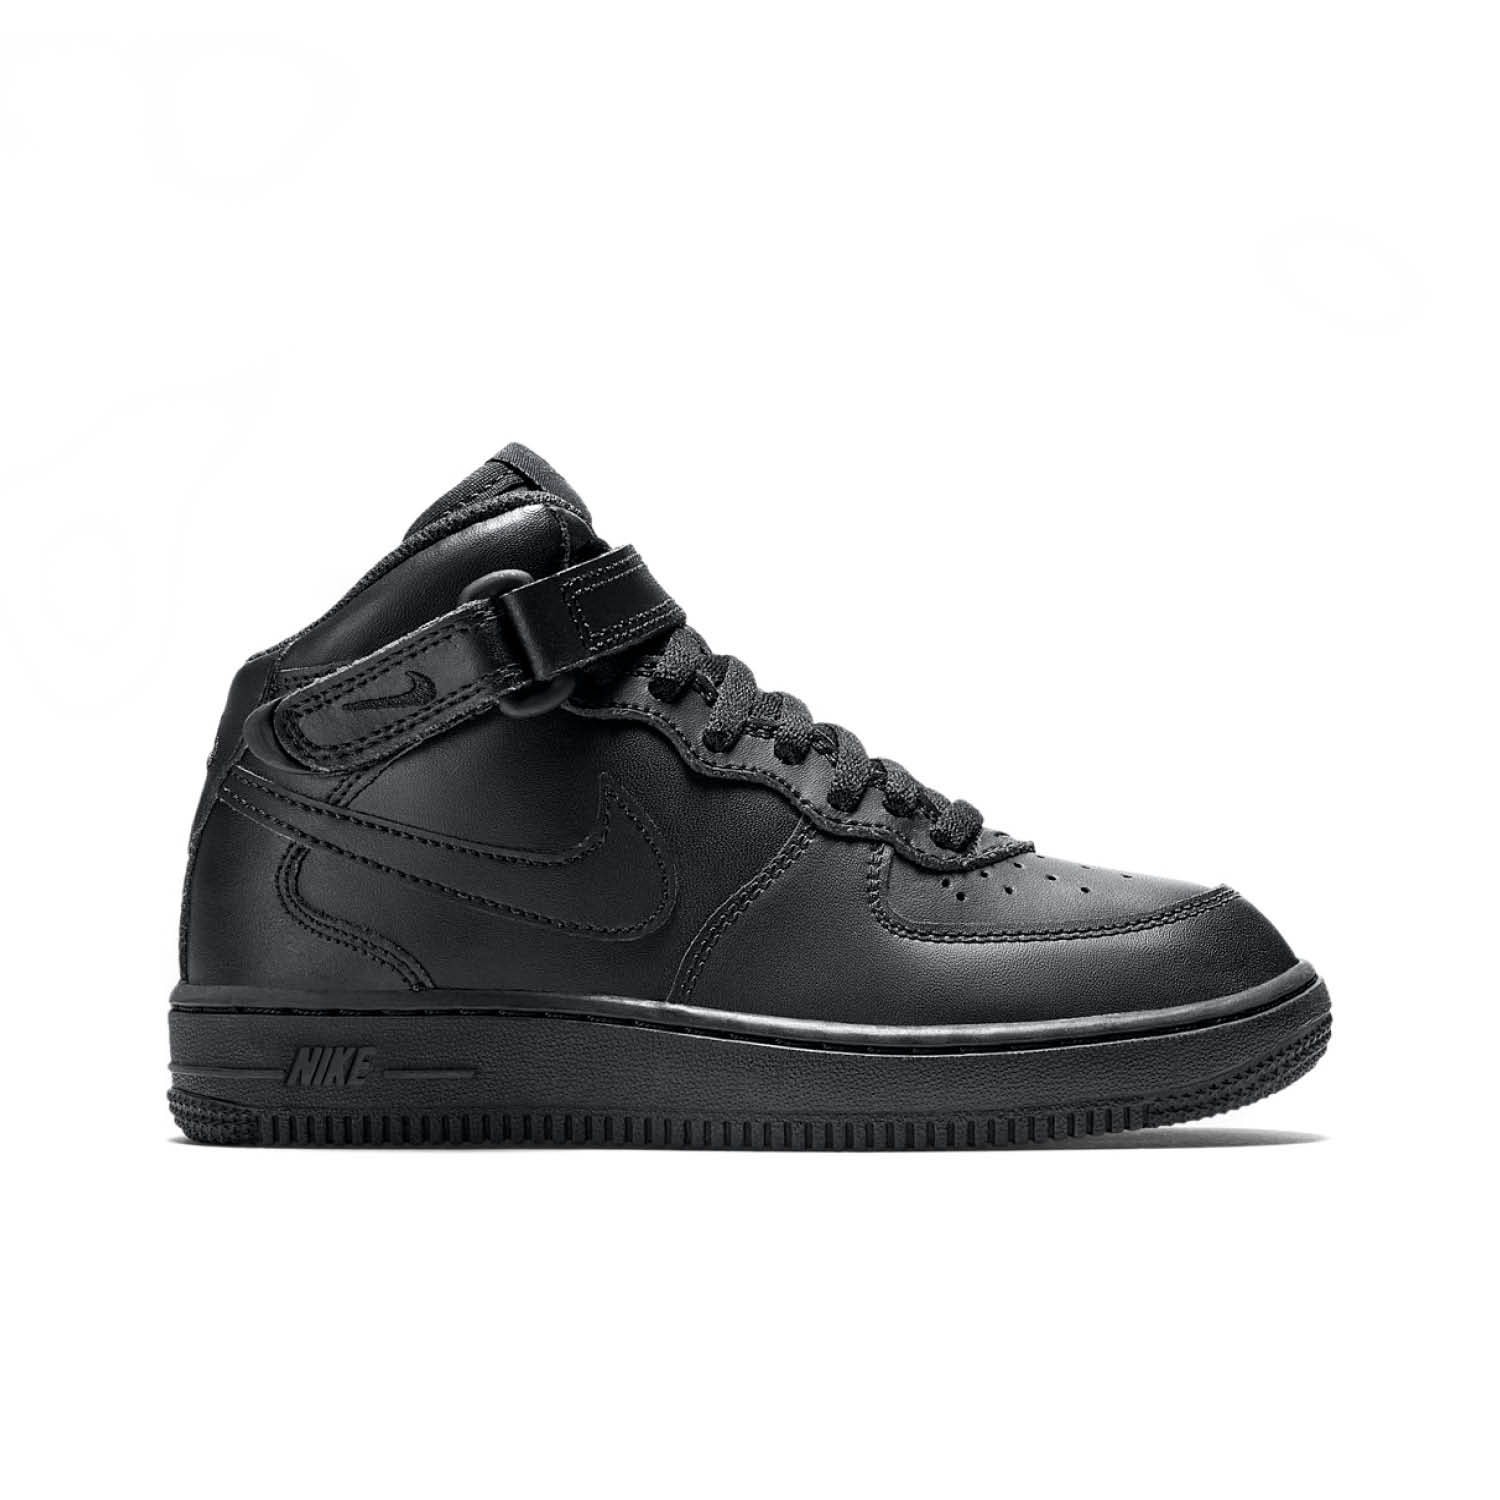 3c538dd4822 ... Nike Air Force 1 MID PS 314196 004 ...